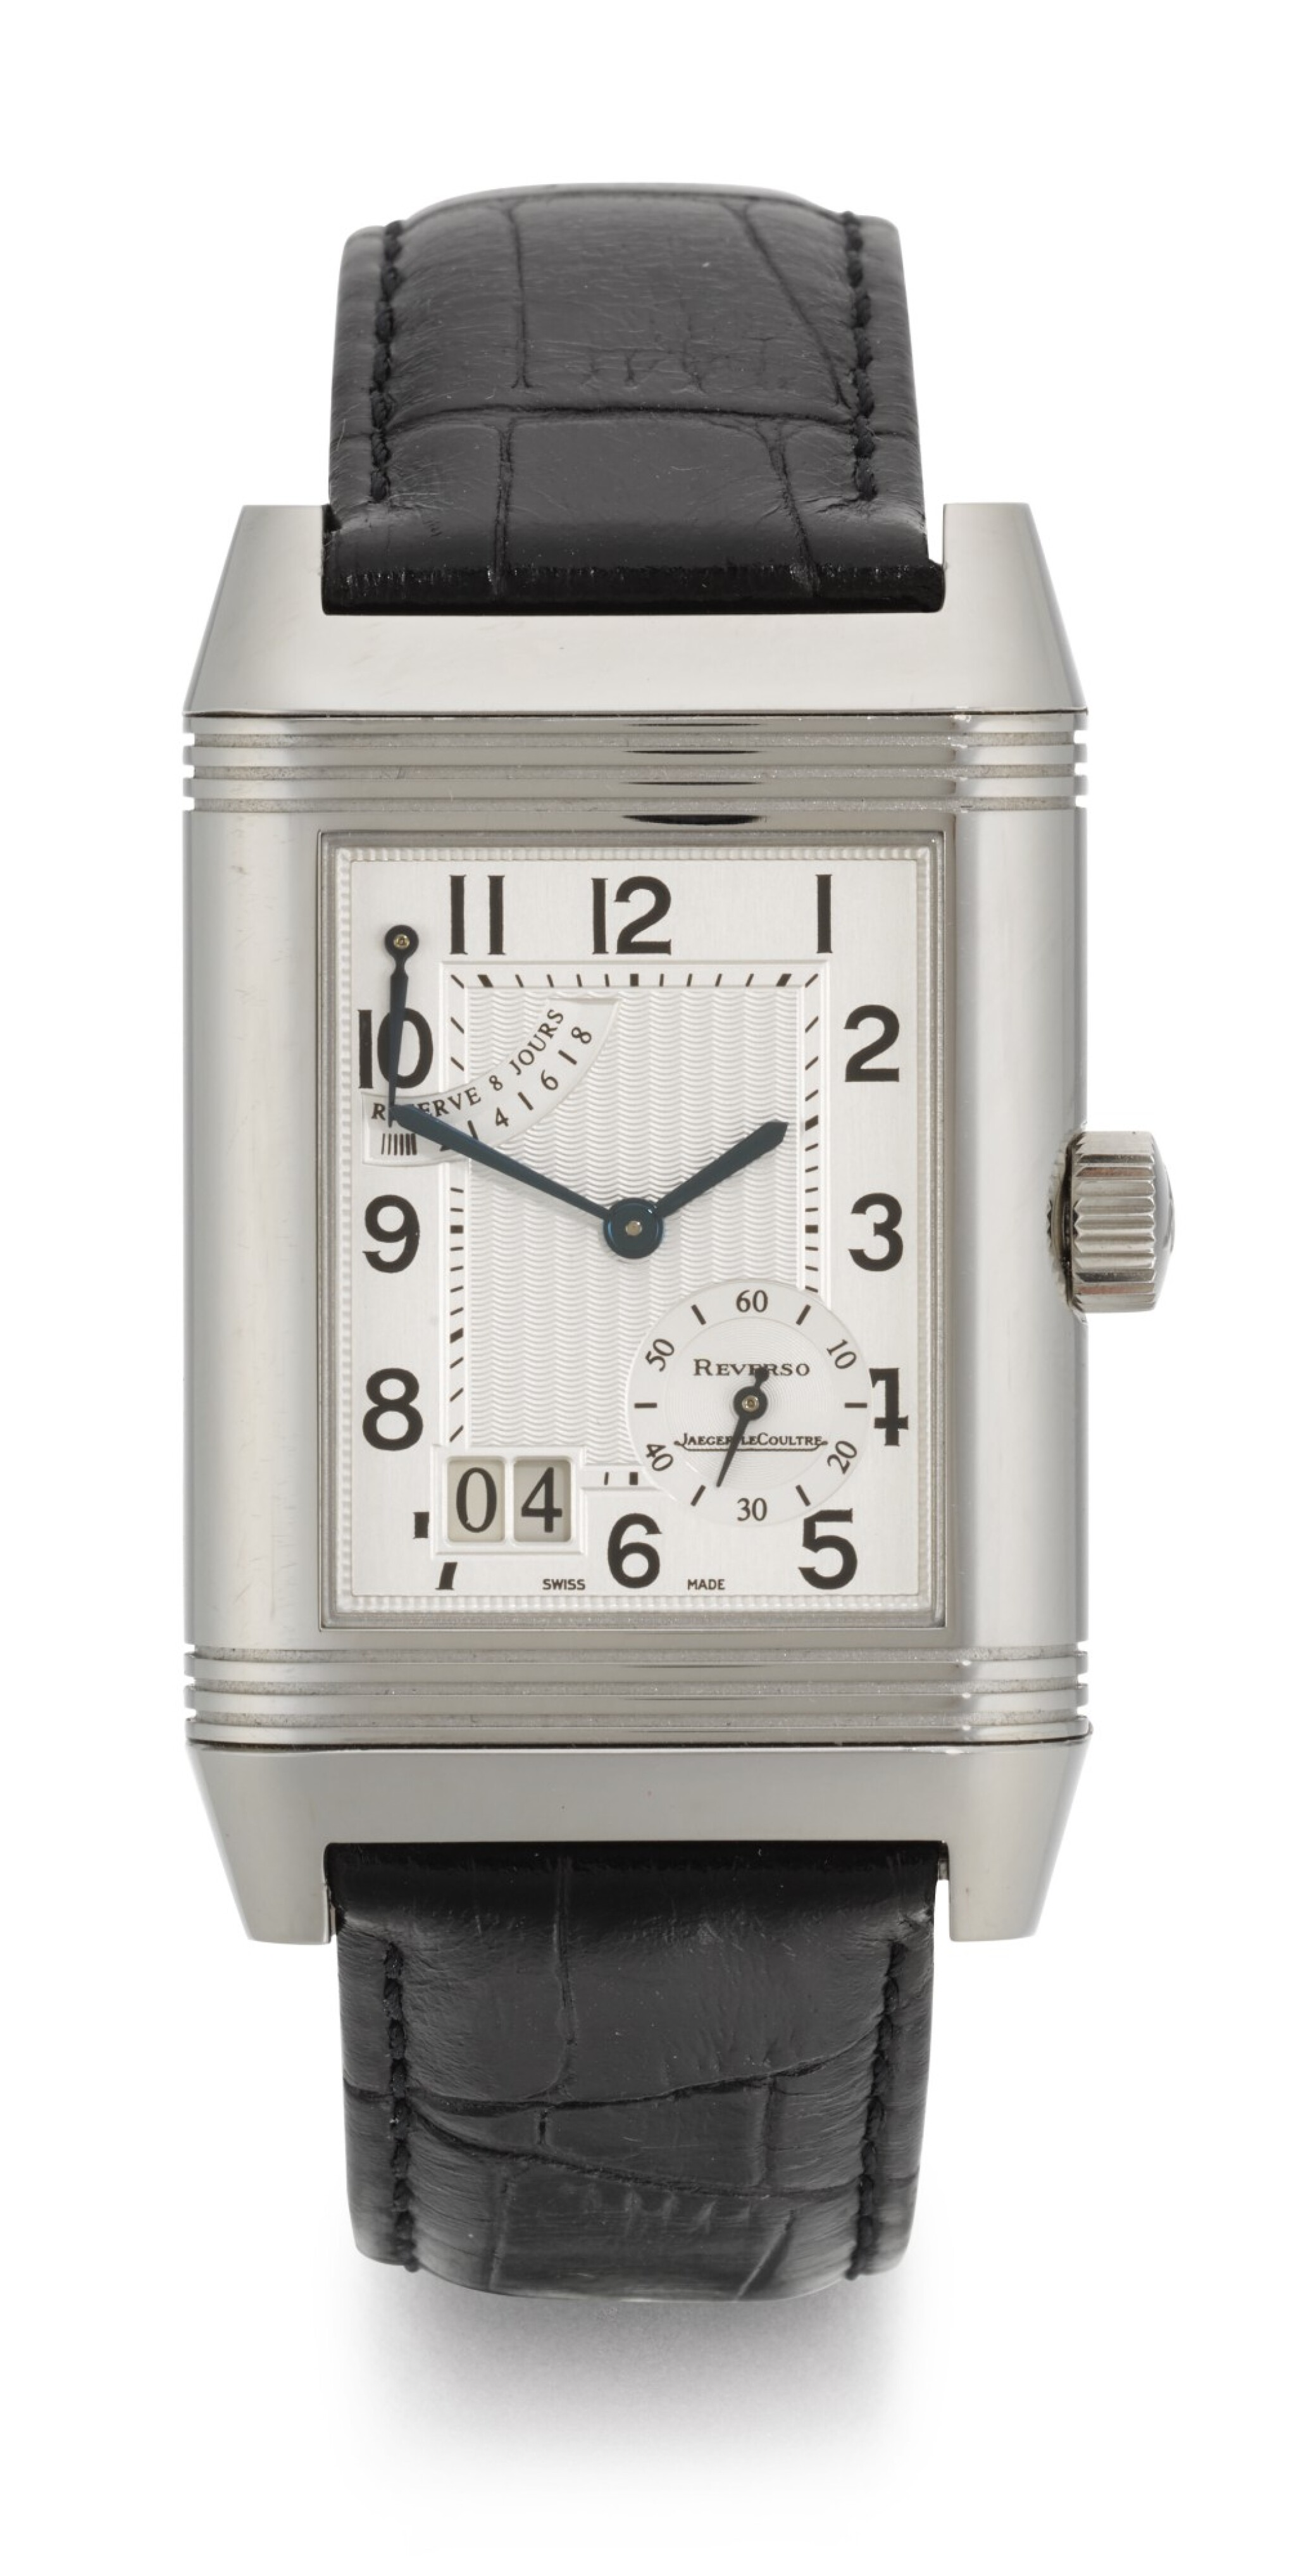 View full screen - View 1 of Lot 20. JAEGER LECOULTRE | REVERSO, REFERENCE 240.8.15, STAINLESS STEEL REVERSIBLE RECTANGULAR WRISTWATCH WITH 8-DAY POWER-RESERVE INDICATION AND DATE, CIRCA 2003.